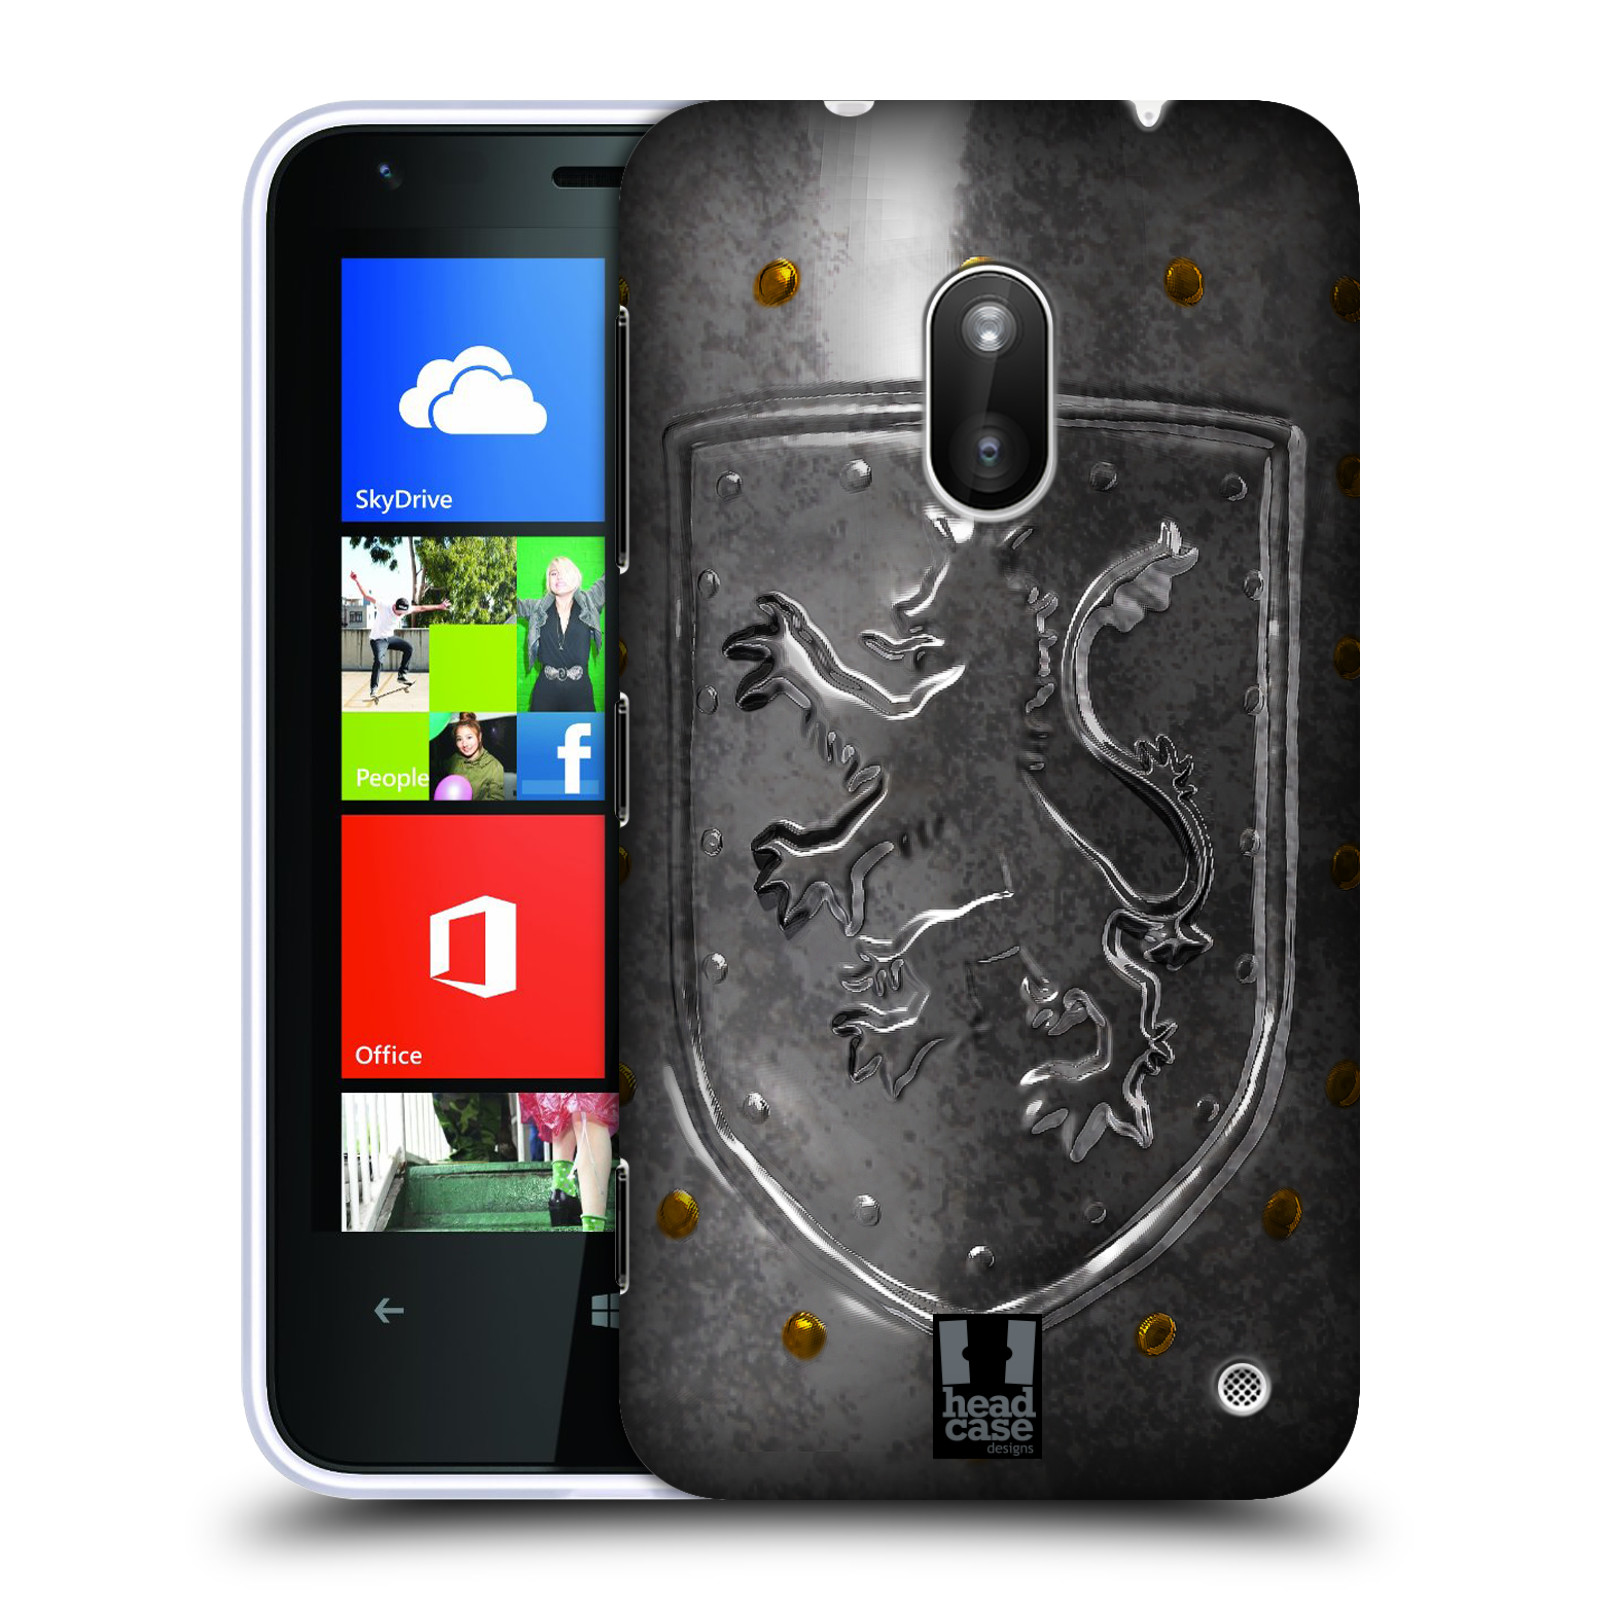 HEAD CASE DESIGNS MEDIEVAL ARMOURY HARD BACK CASE FOR NOKIA LUMIA 620